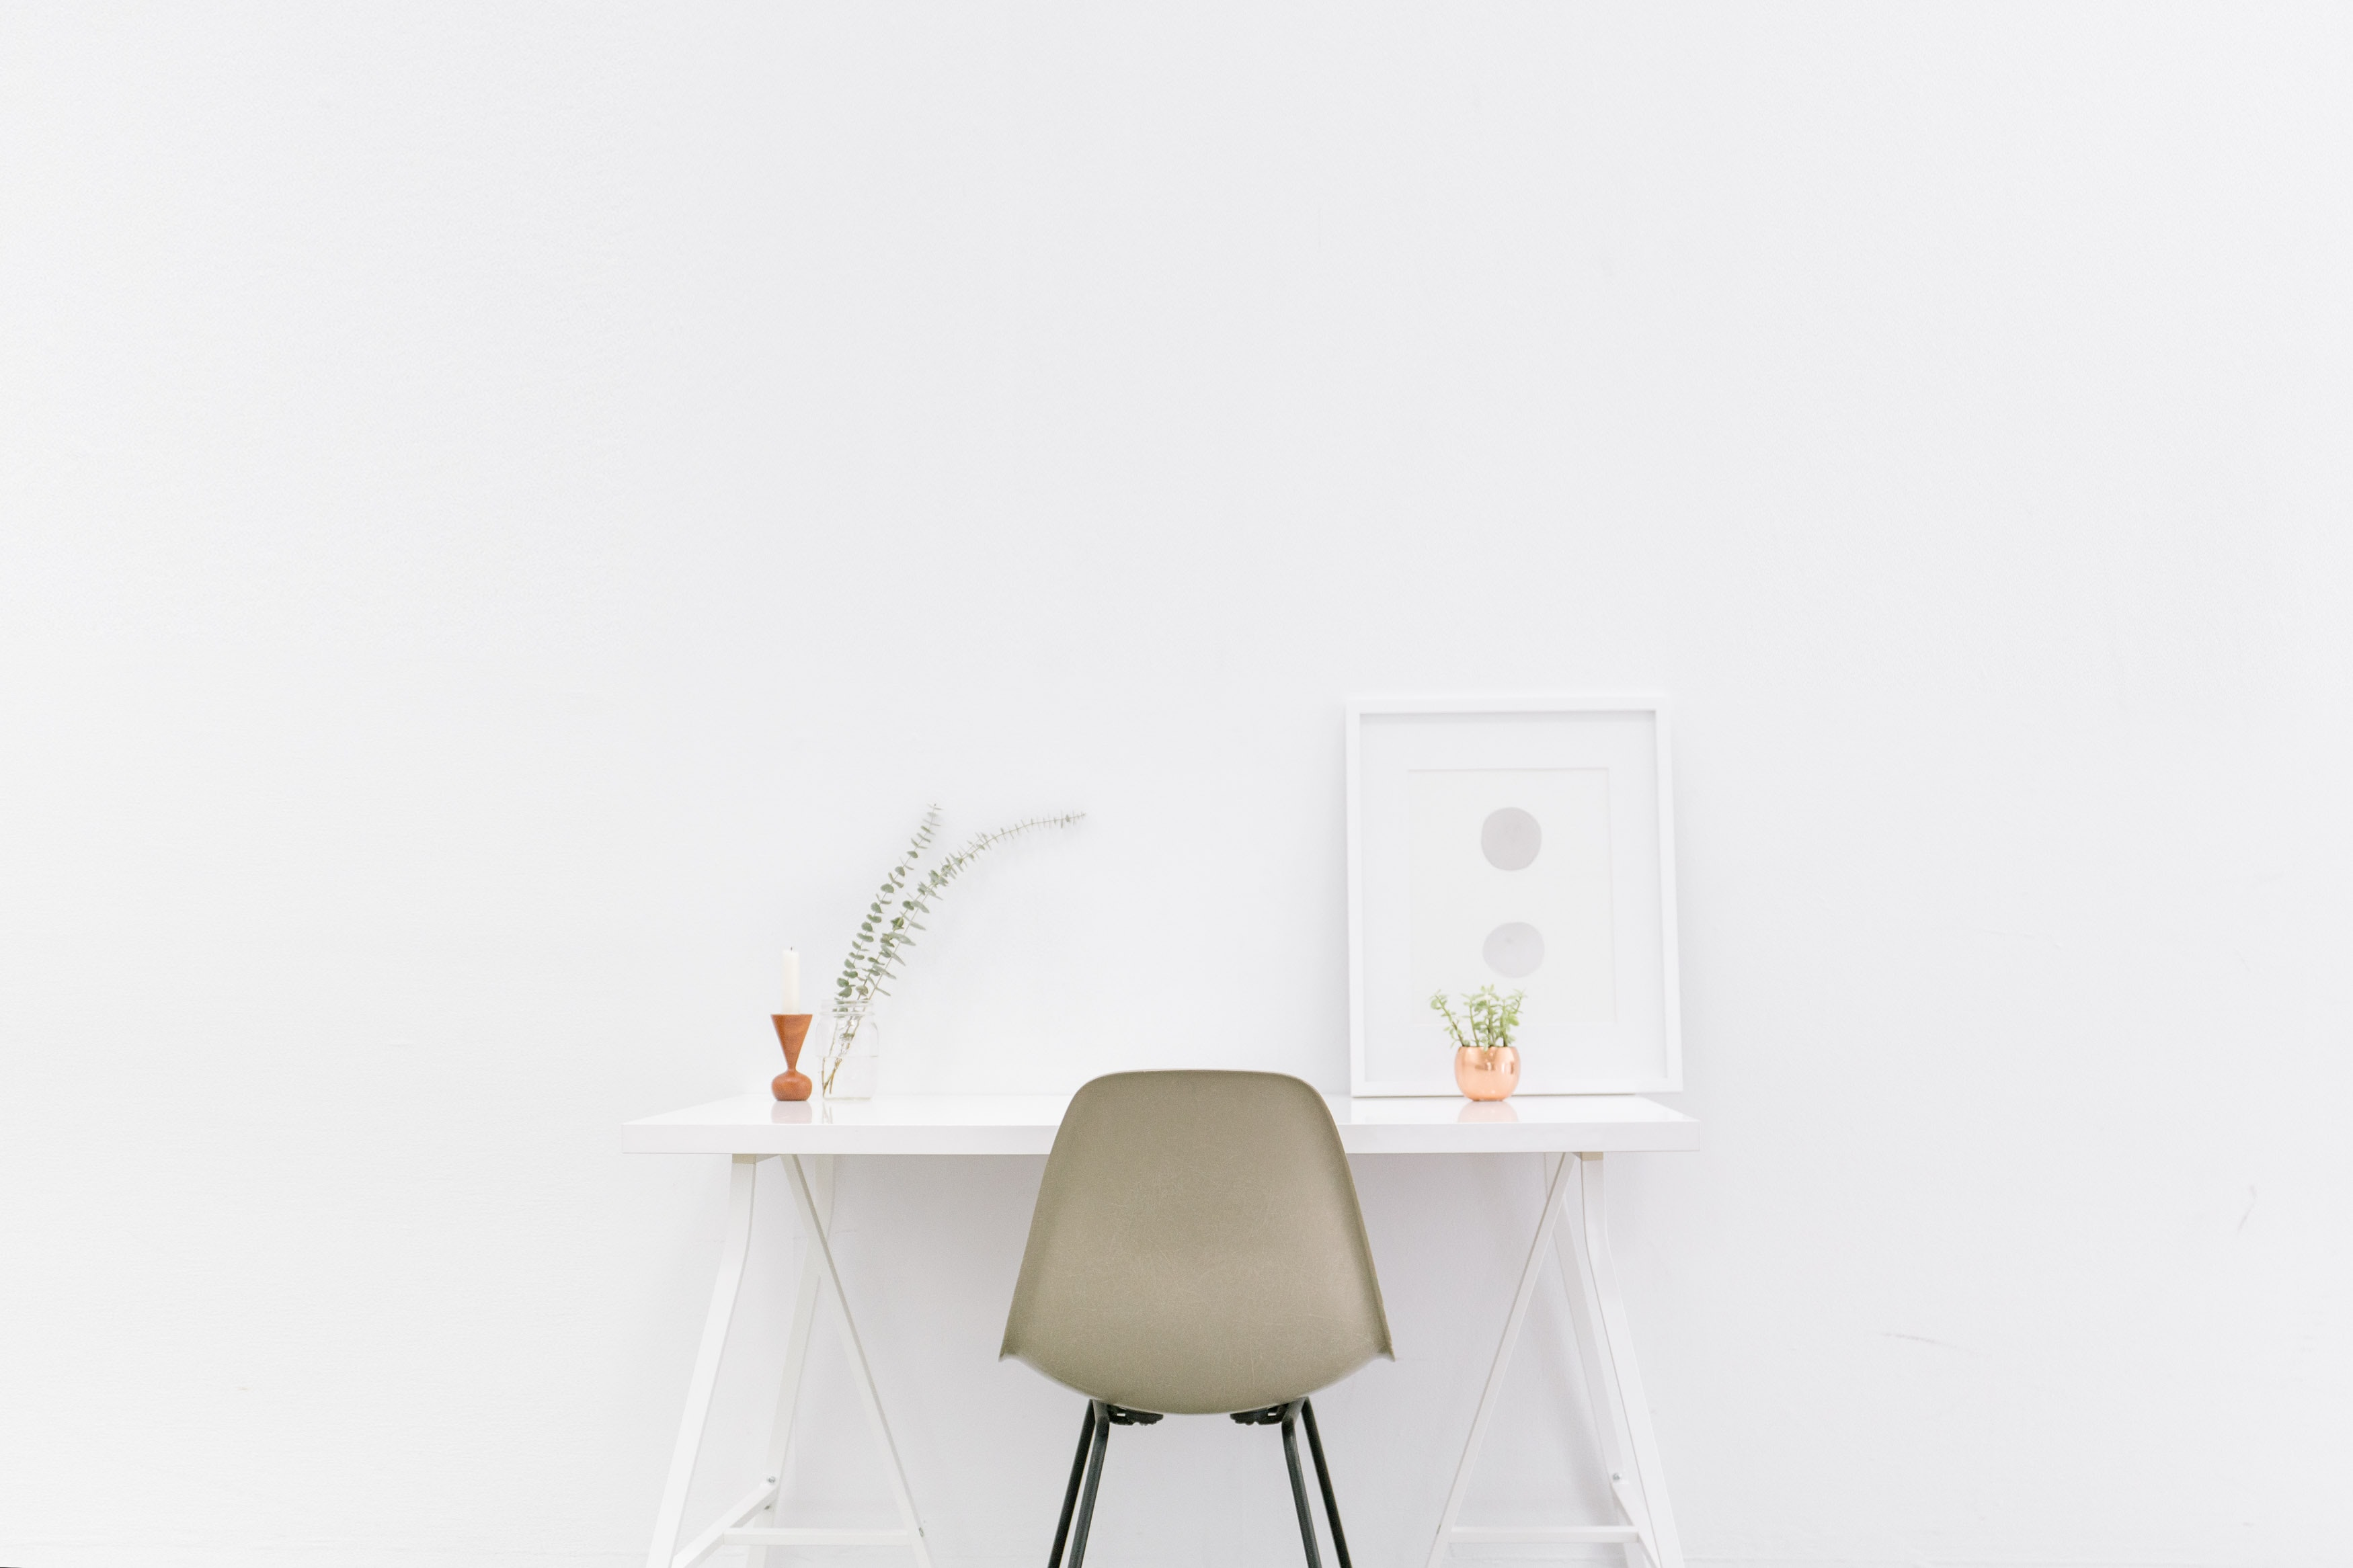 Modest worktable and chair in an all-white room